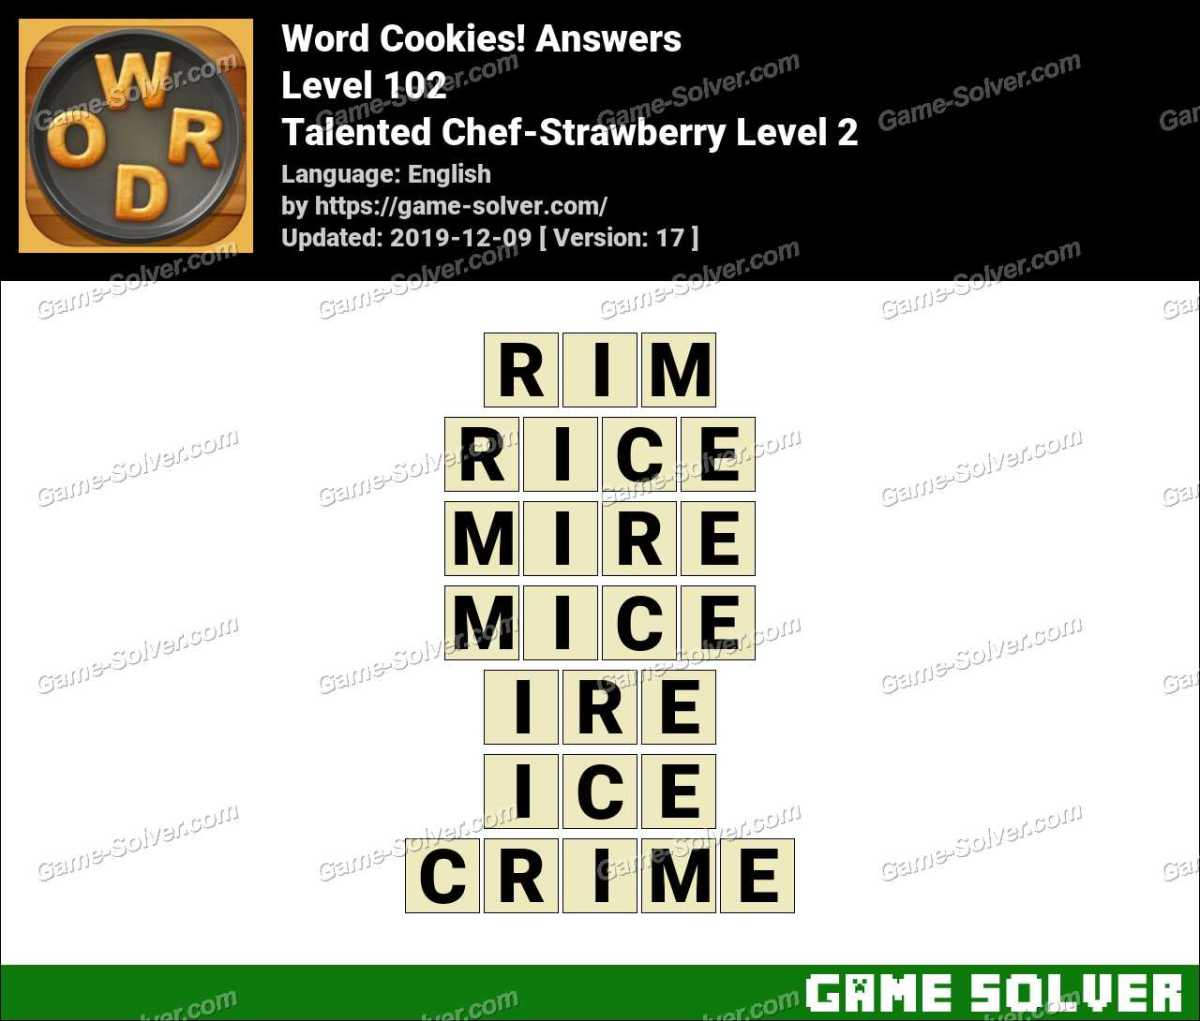 Word Cookies Talented Chef-Strawberry Level 2 Answers